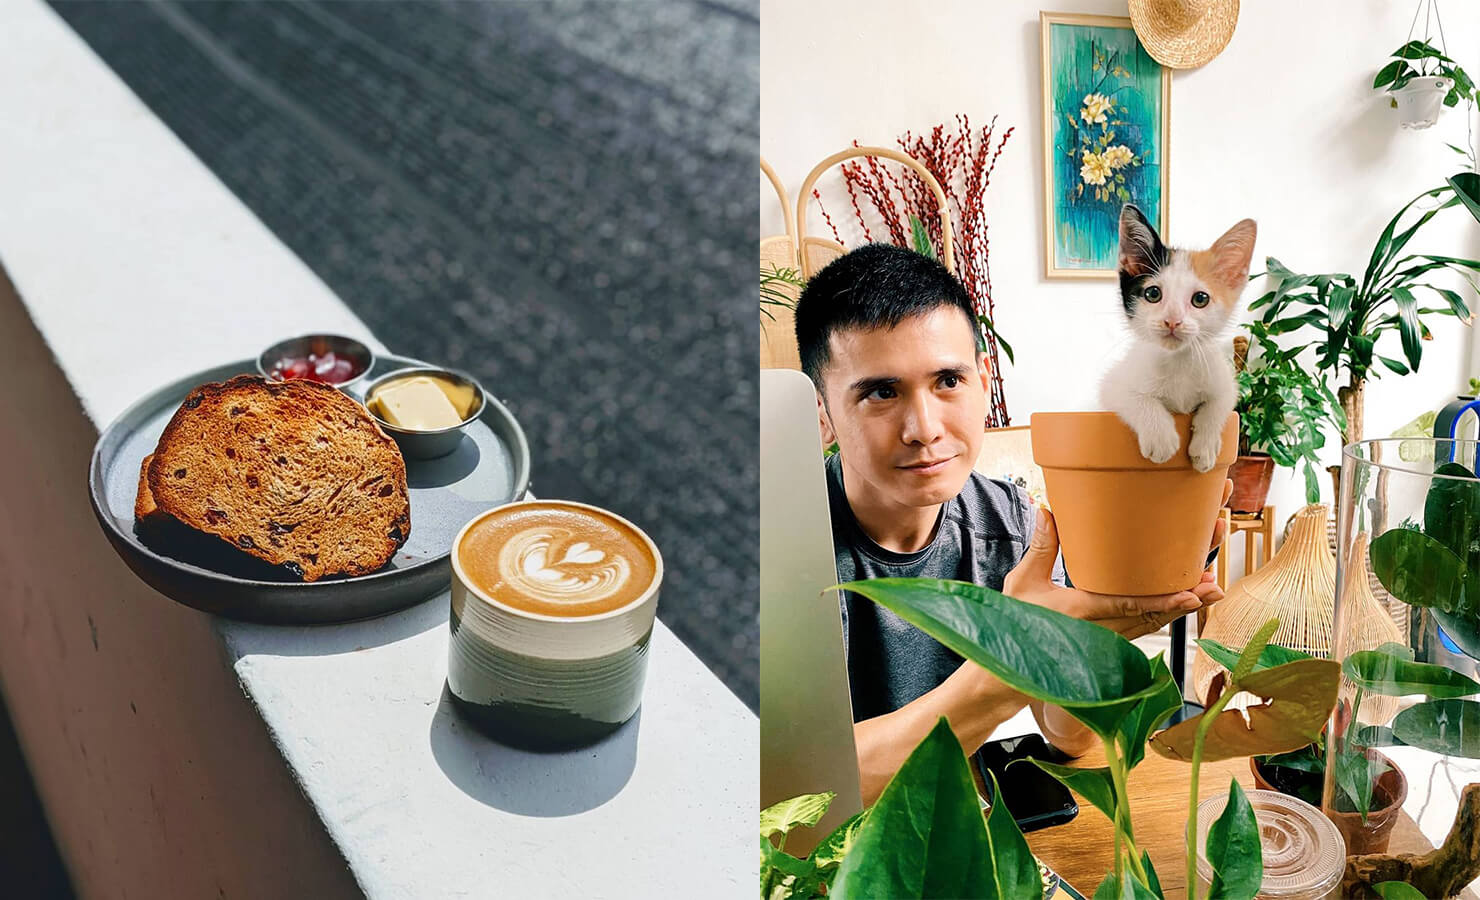 bloomthis-5-plant-flower-cafes-you-have-to-visit-03-planterchin-coffee-art-cat-in-cafe